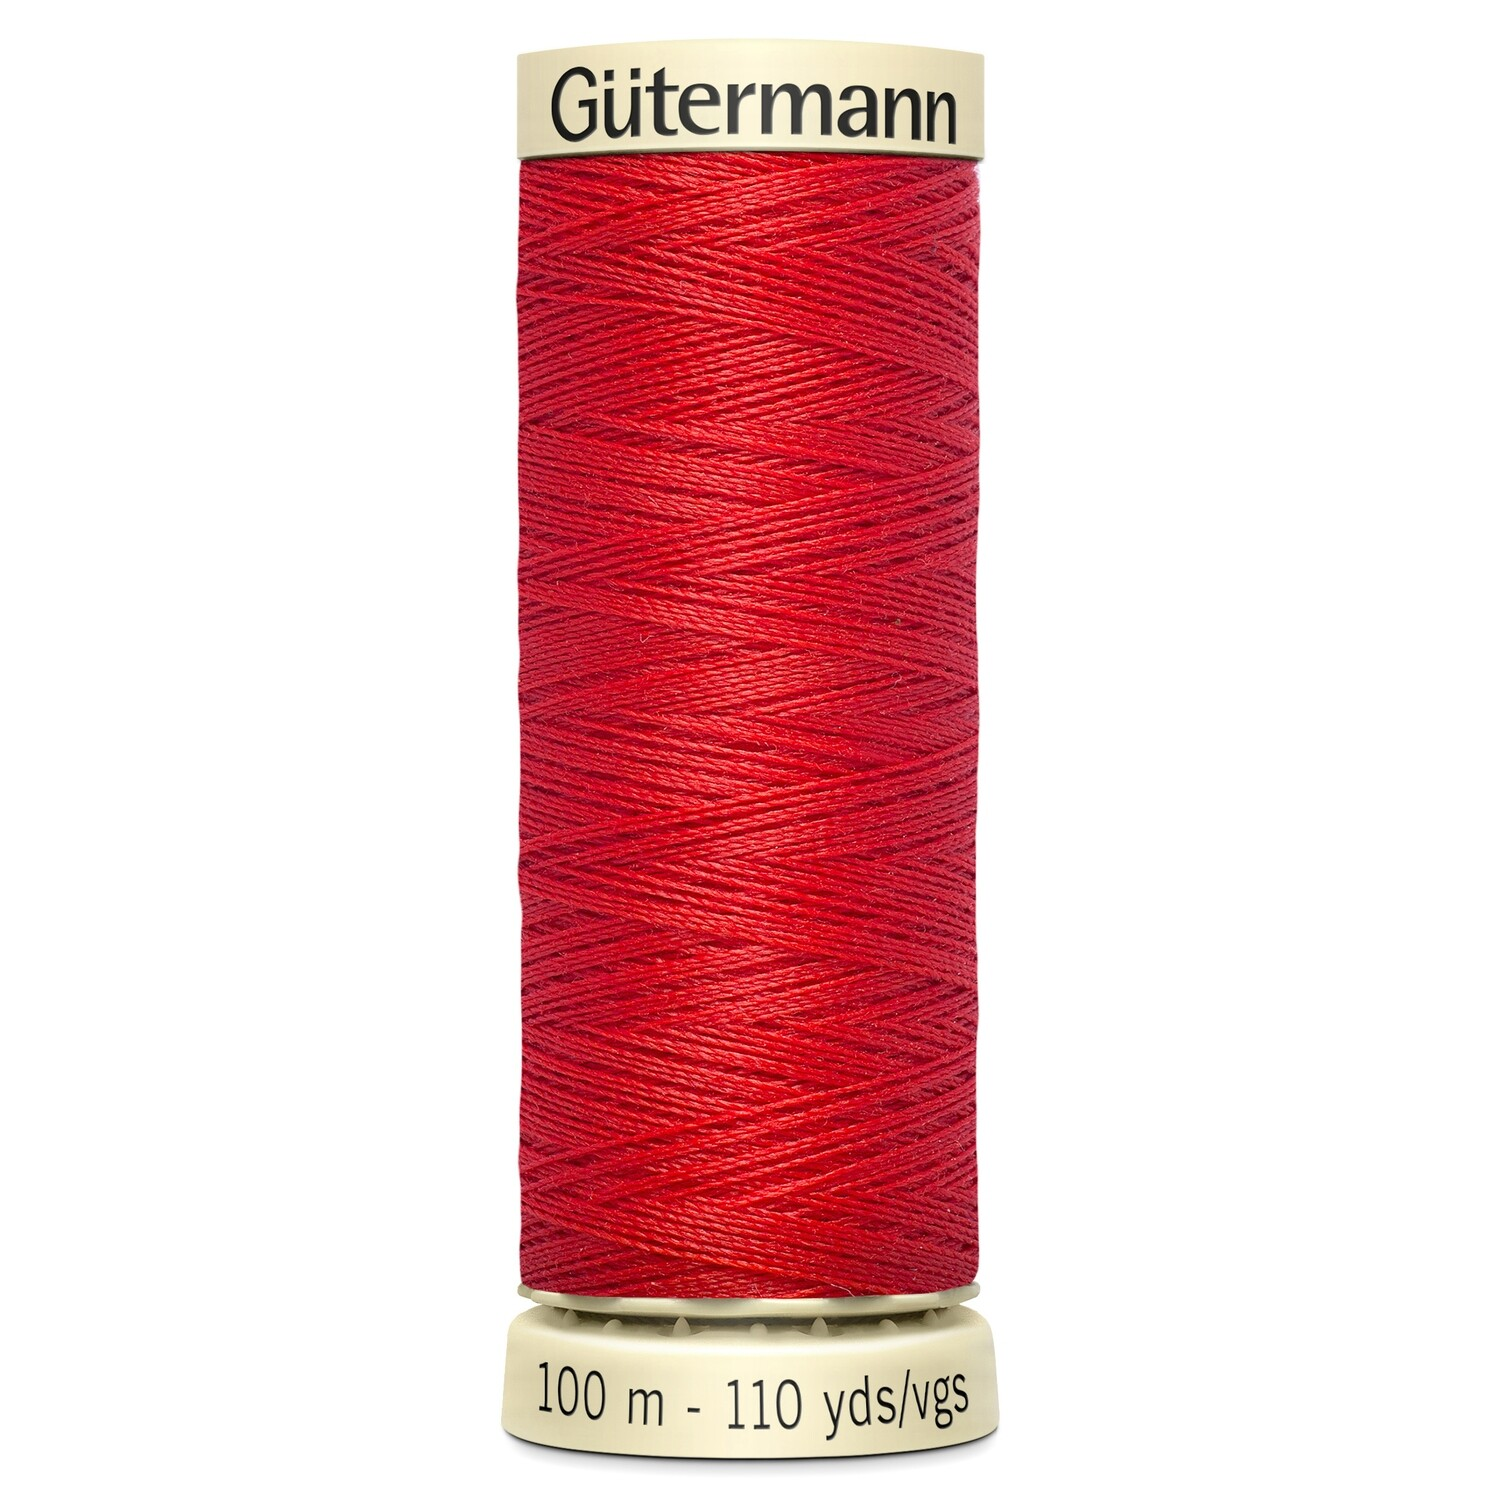 Gutermann Sew-All thread 364